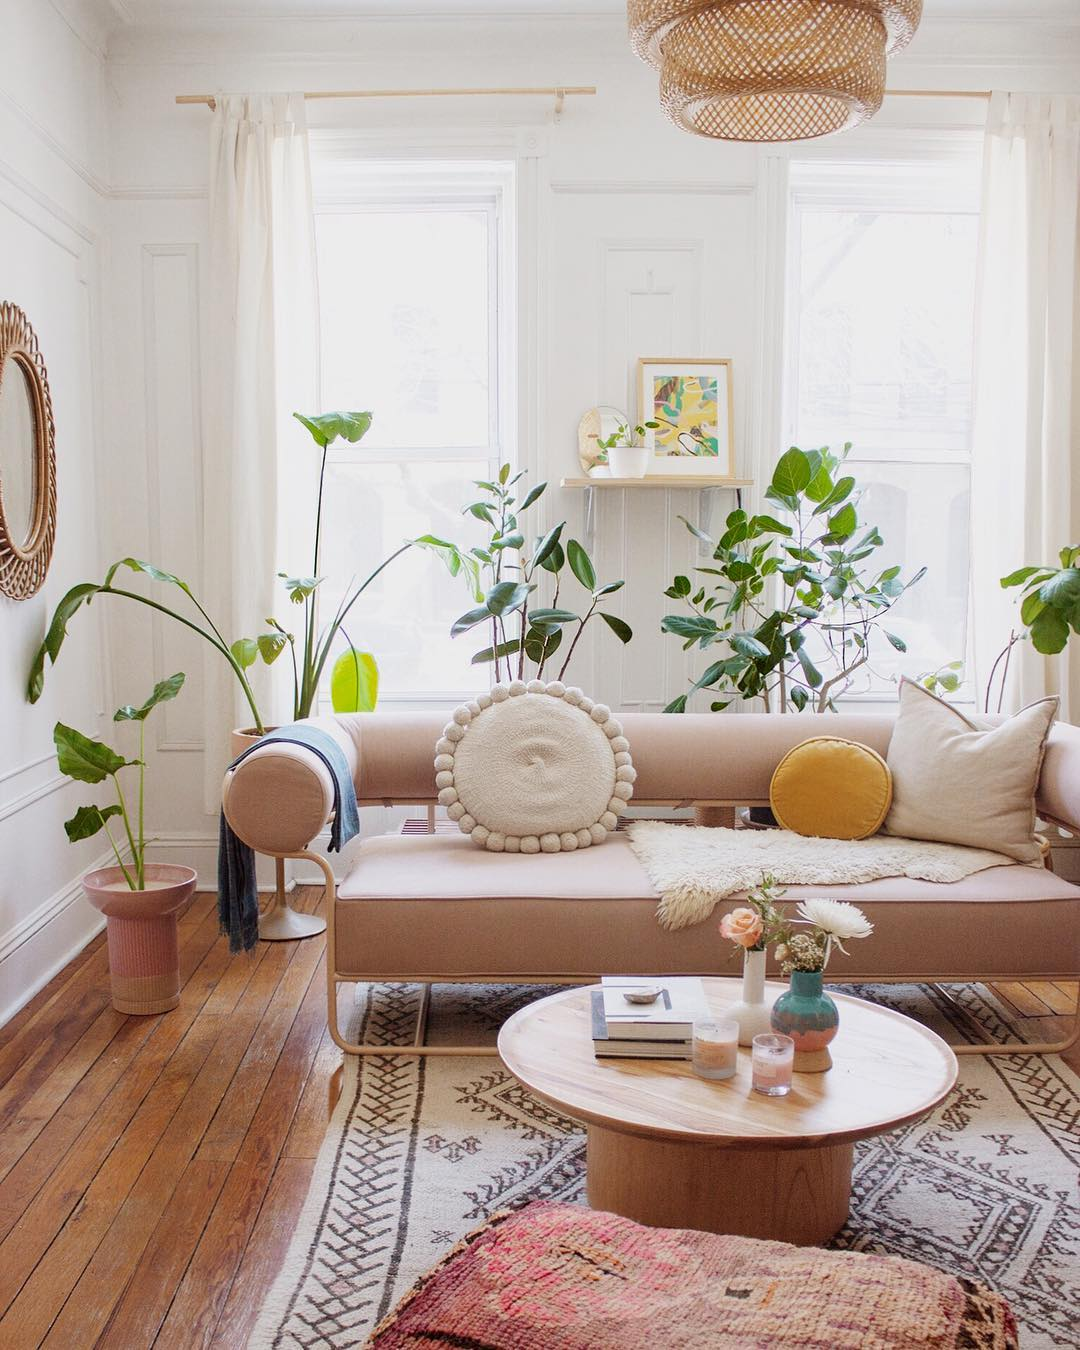 10 Stylish Renters You Should Follow On Instagram Apartment Number 4